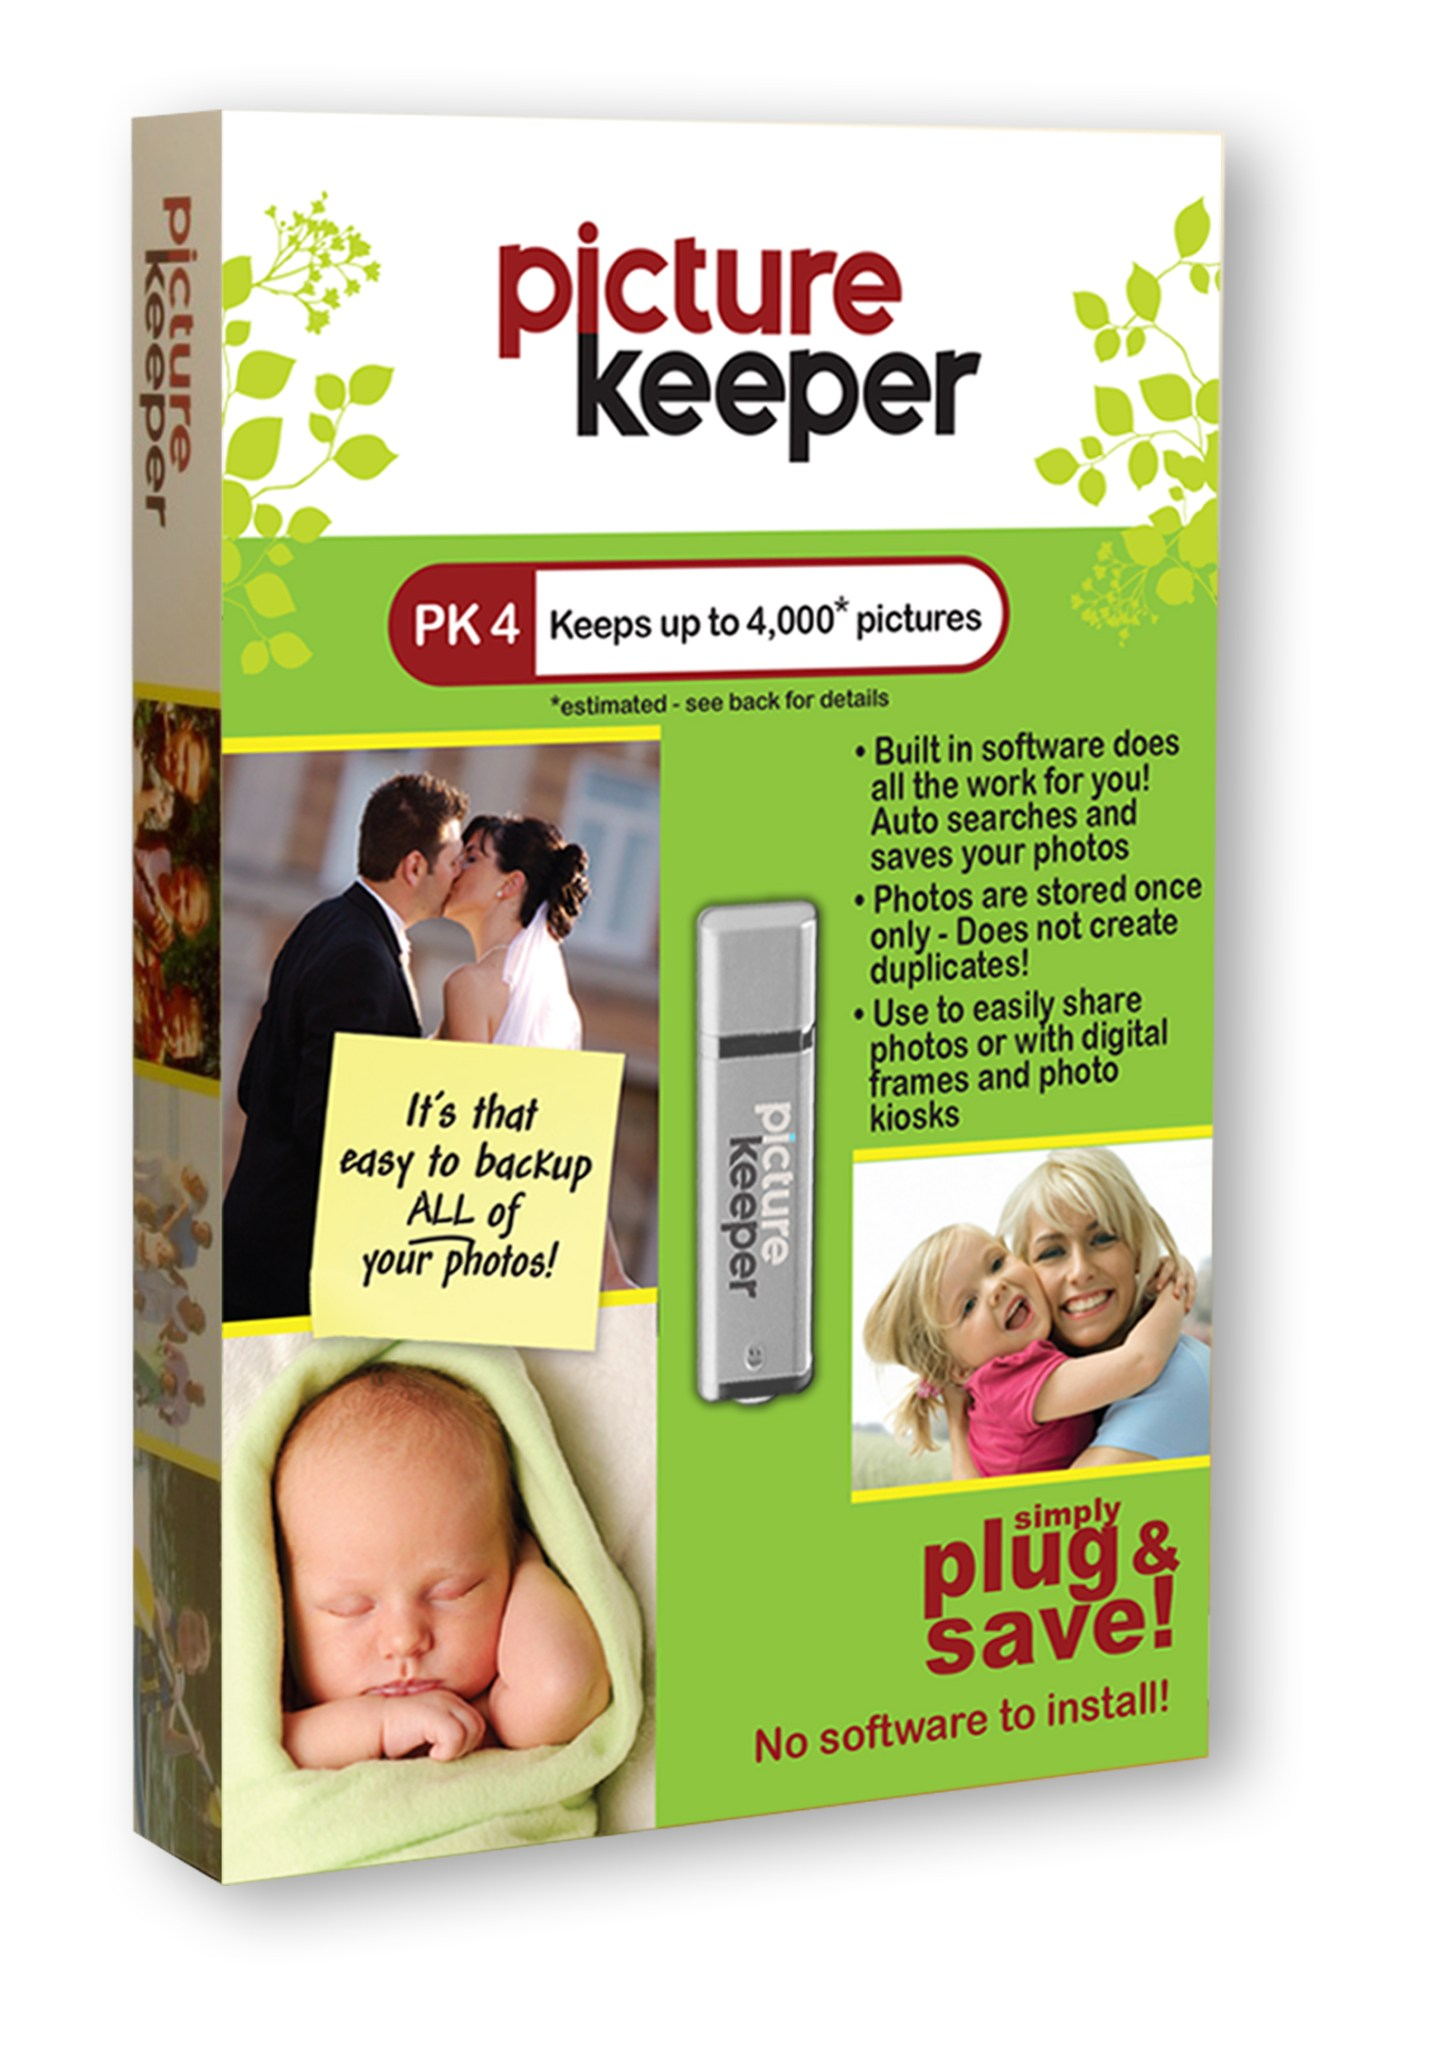 Safely Backup Your Photos with #PictureKeeper #Giveaway